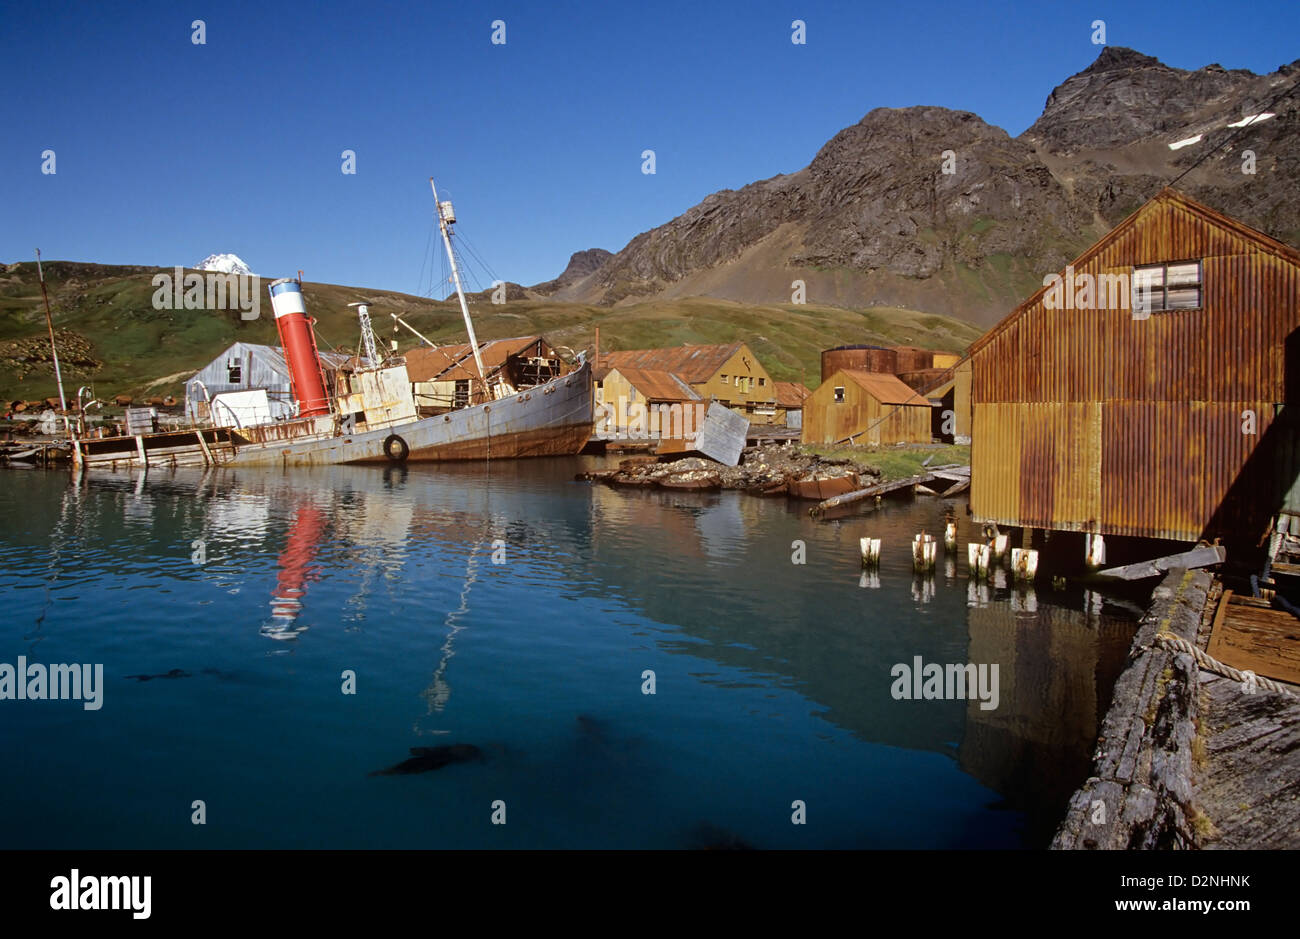 Grytviken's last whale catcher, Petrel, rusts away at a jetty, South Georgia Island, Antarctica - Stock Image